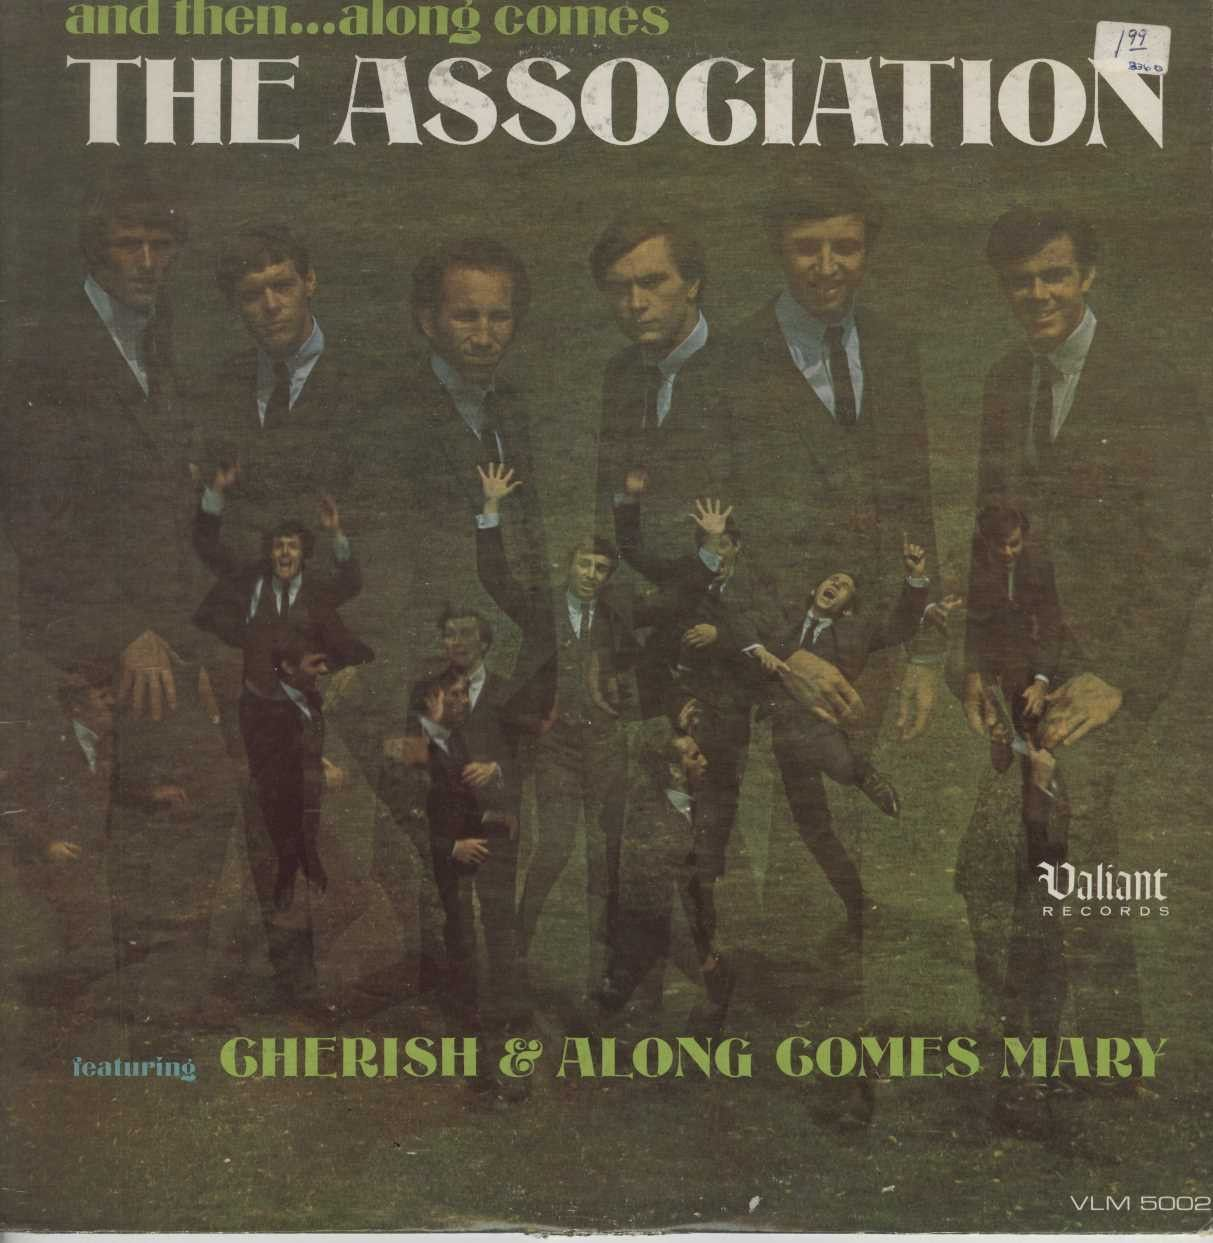 The Association - And Then...Along Comes The Association